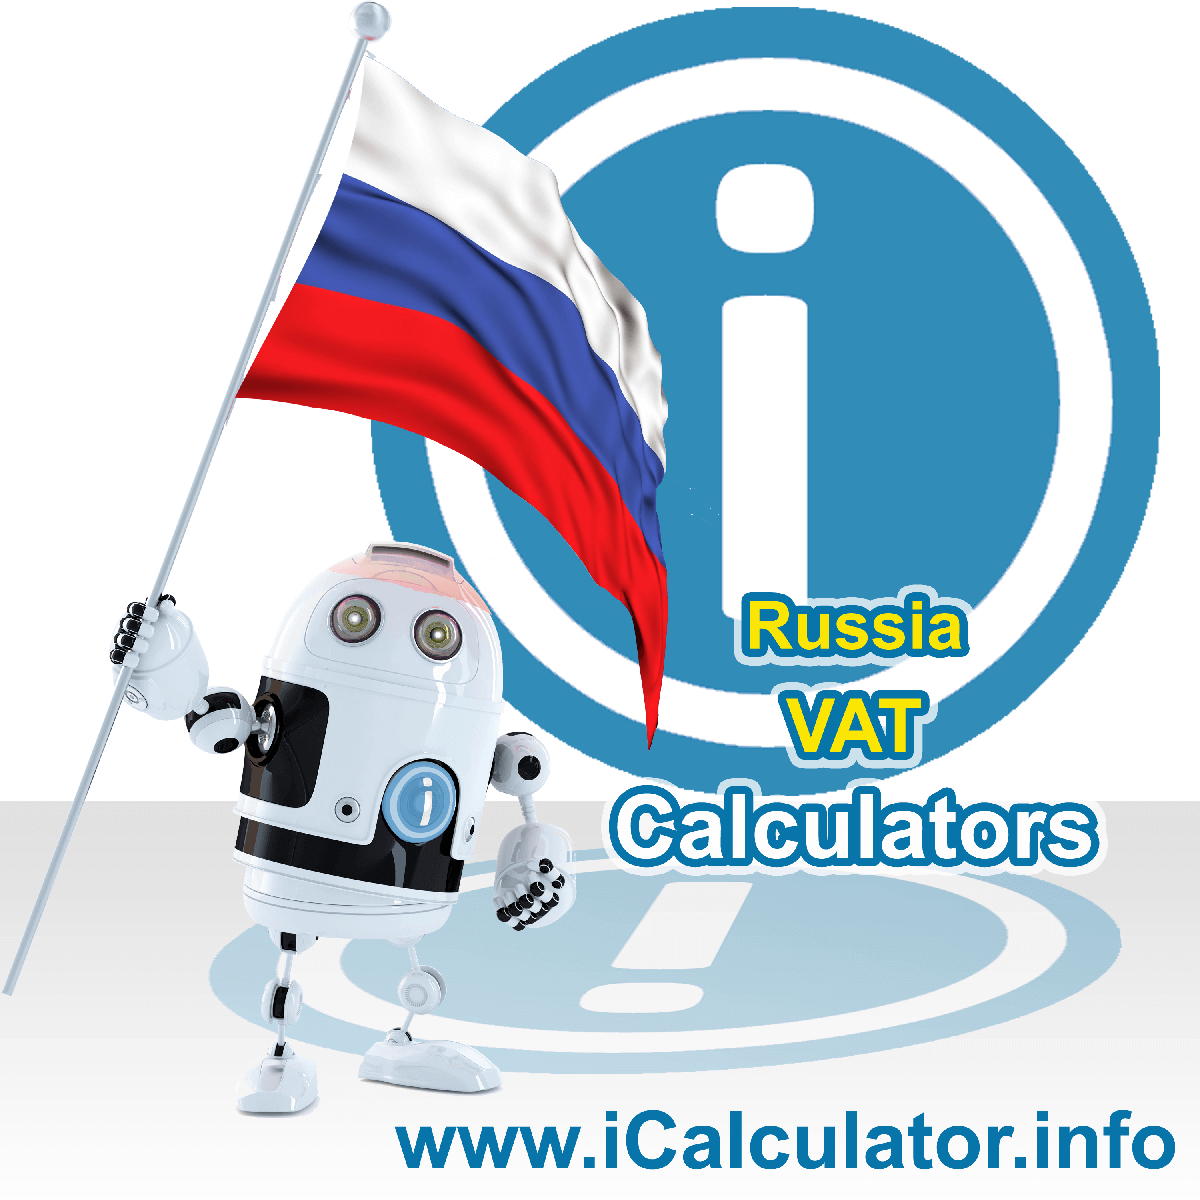 Russia VAT Calculator. This image shows the Russia flag and information relating to the VAT formula used for calculating Value Added Tax in Russia using the Russia VAT Calculator in 2020